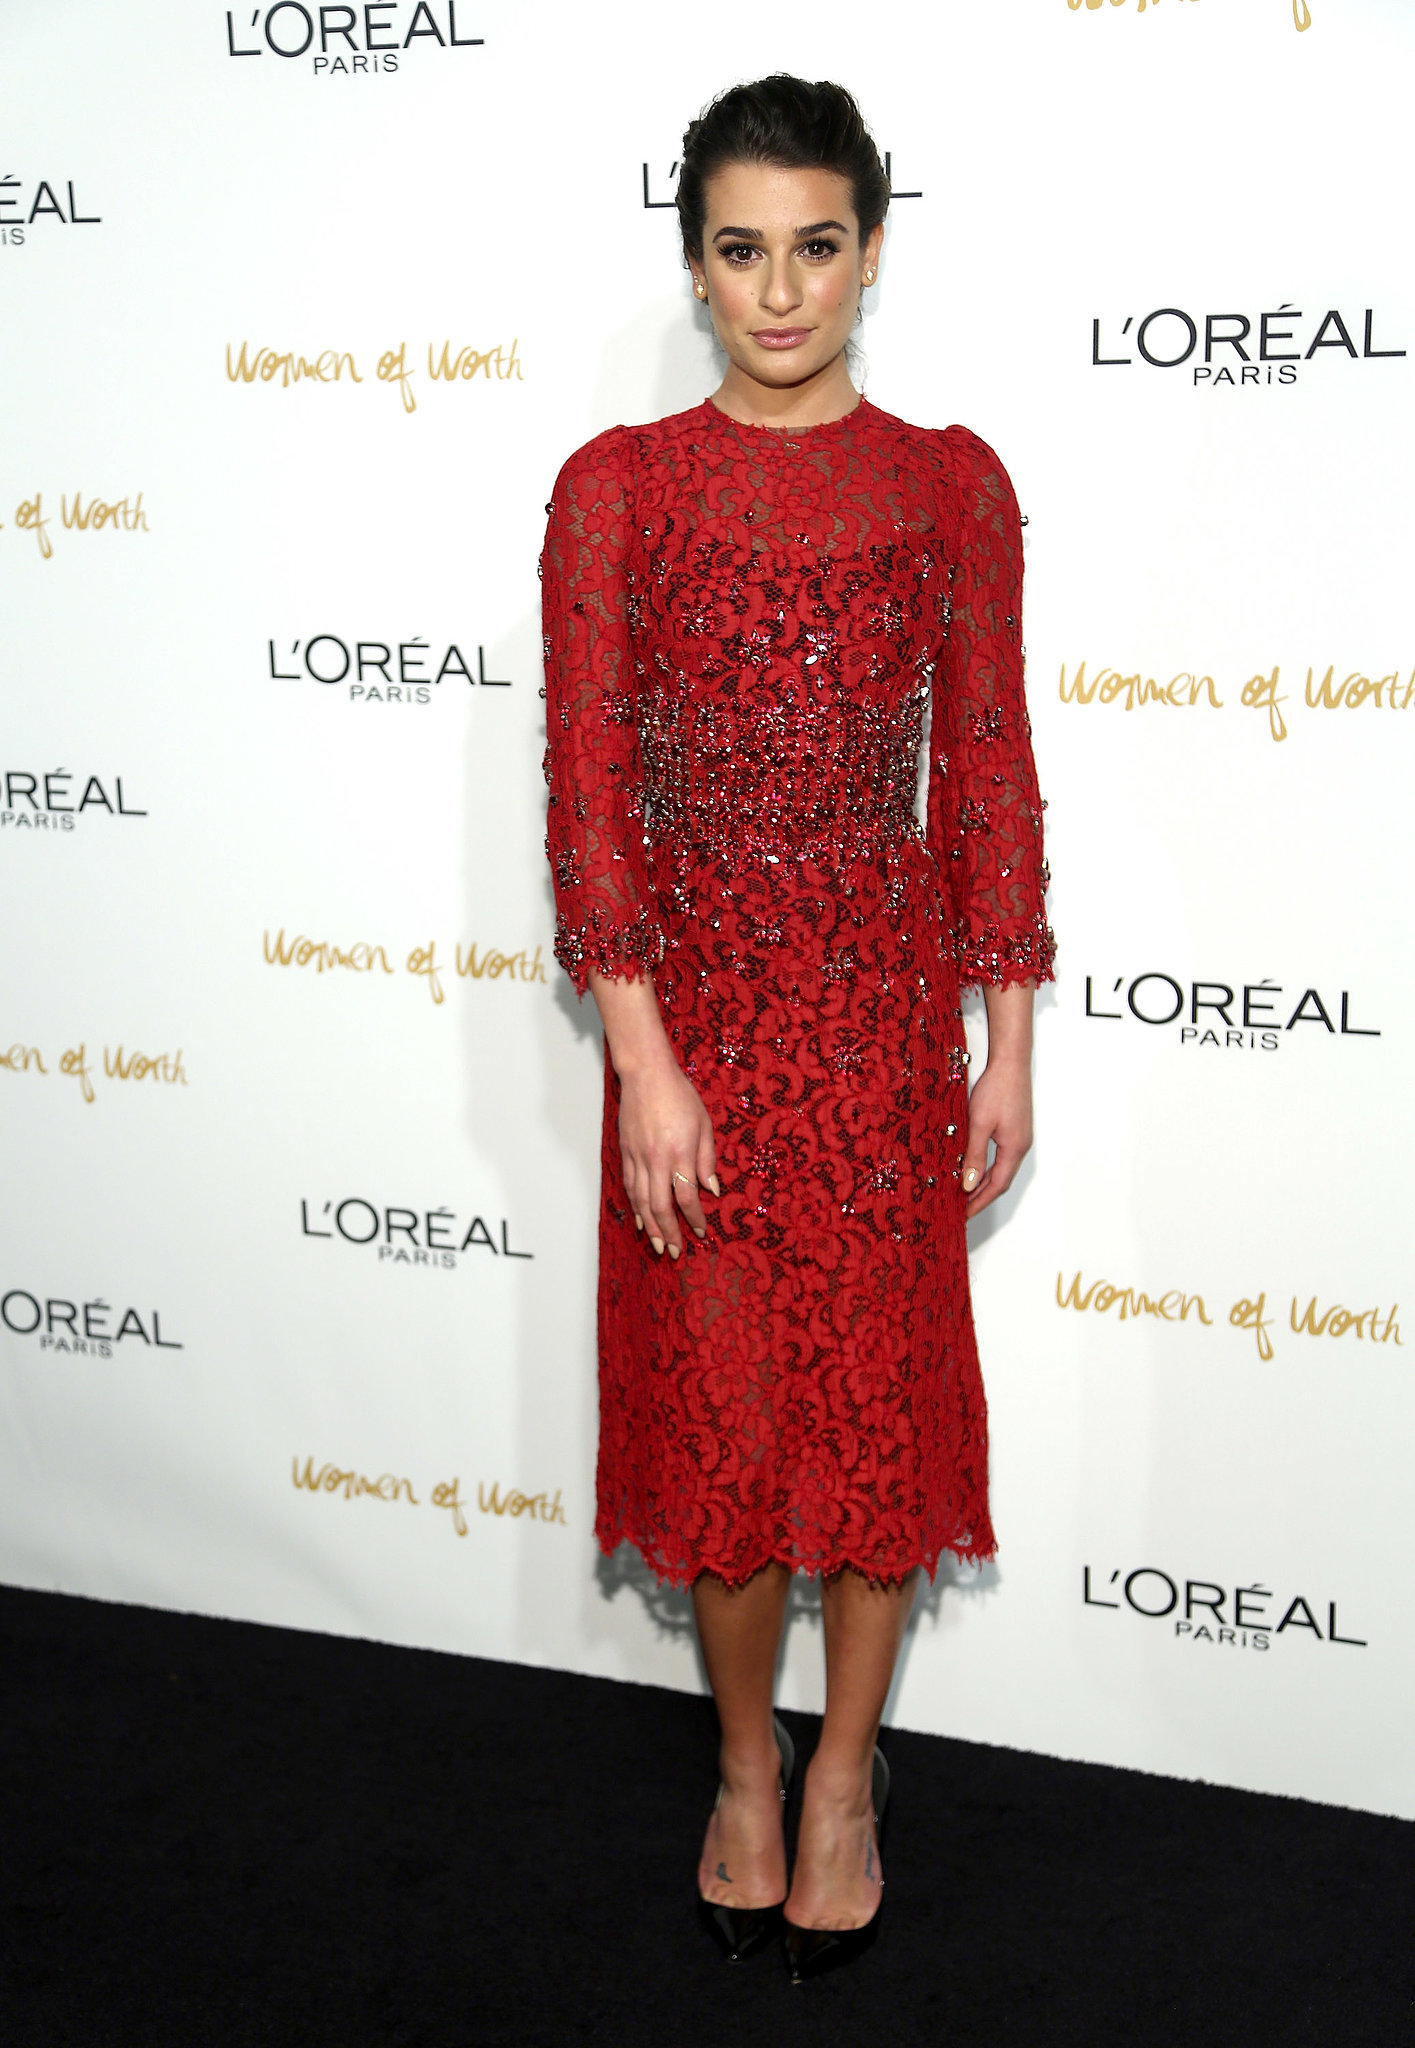 Hello, gorgeous! Lea Michele partied the night away in a decorated lace dress by Dolce & Gabbana at the Women of Worth event in December 2013. Where to Wear: Catching your favorite Broadway play